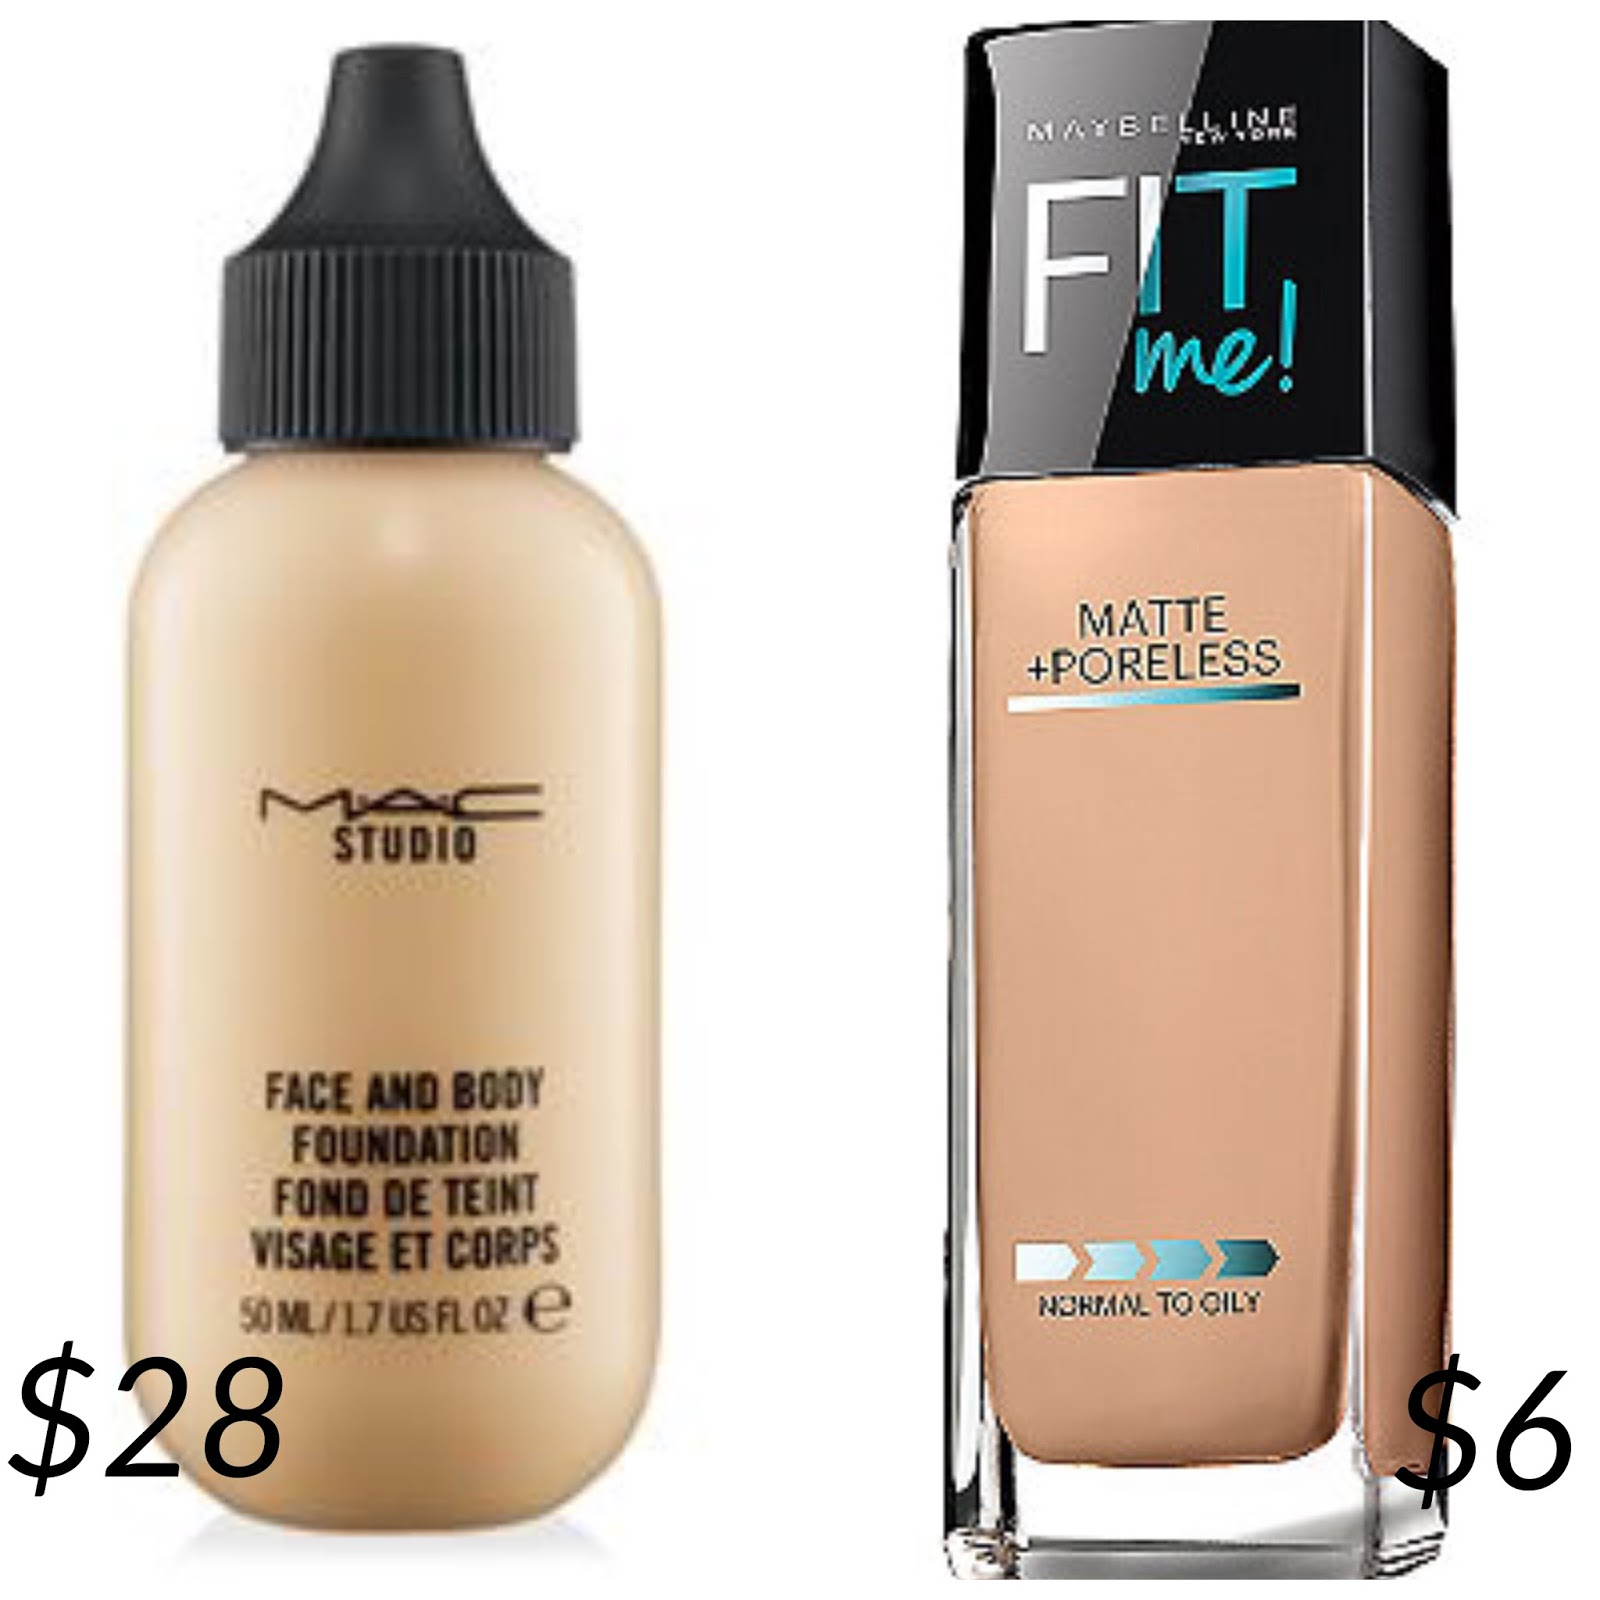 The best foundation for large pores